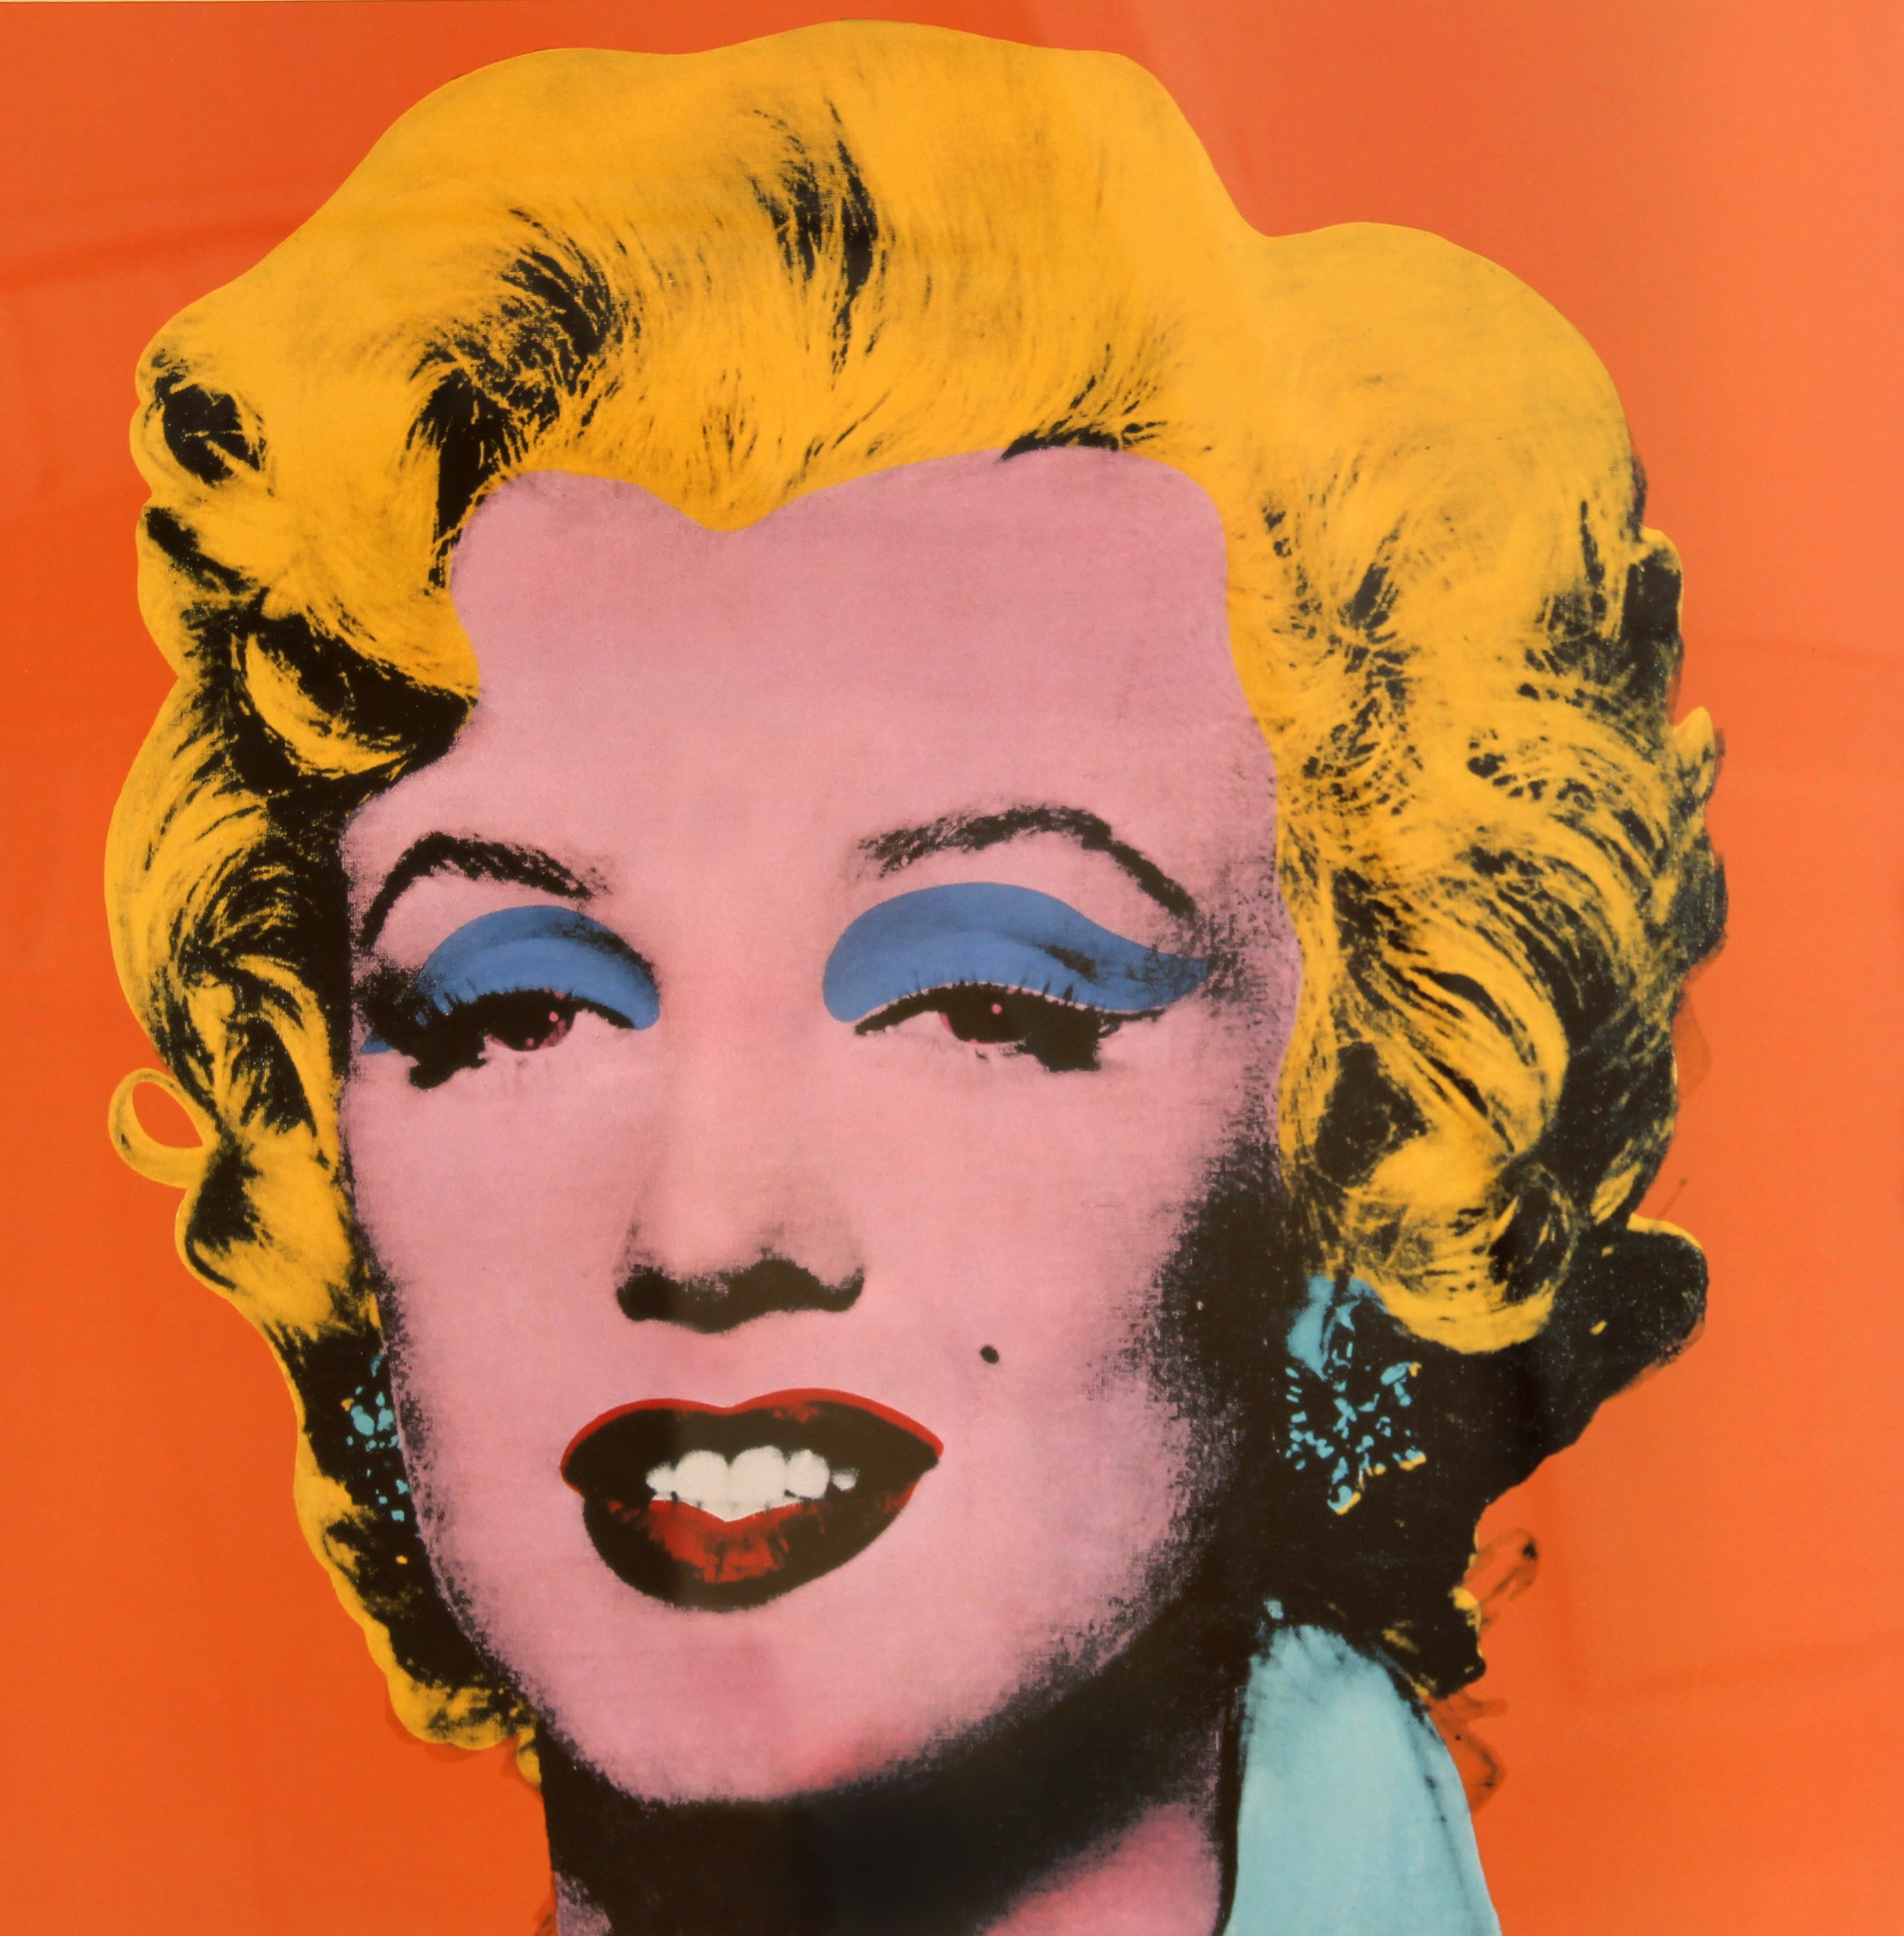 Marilyn Pop Art Andy Warhol Andy Warhols 15 Minutes Of Fame Continues For 25 Years